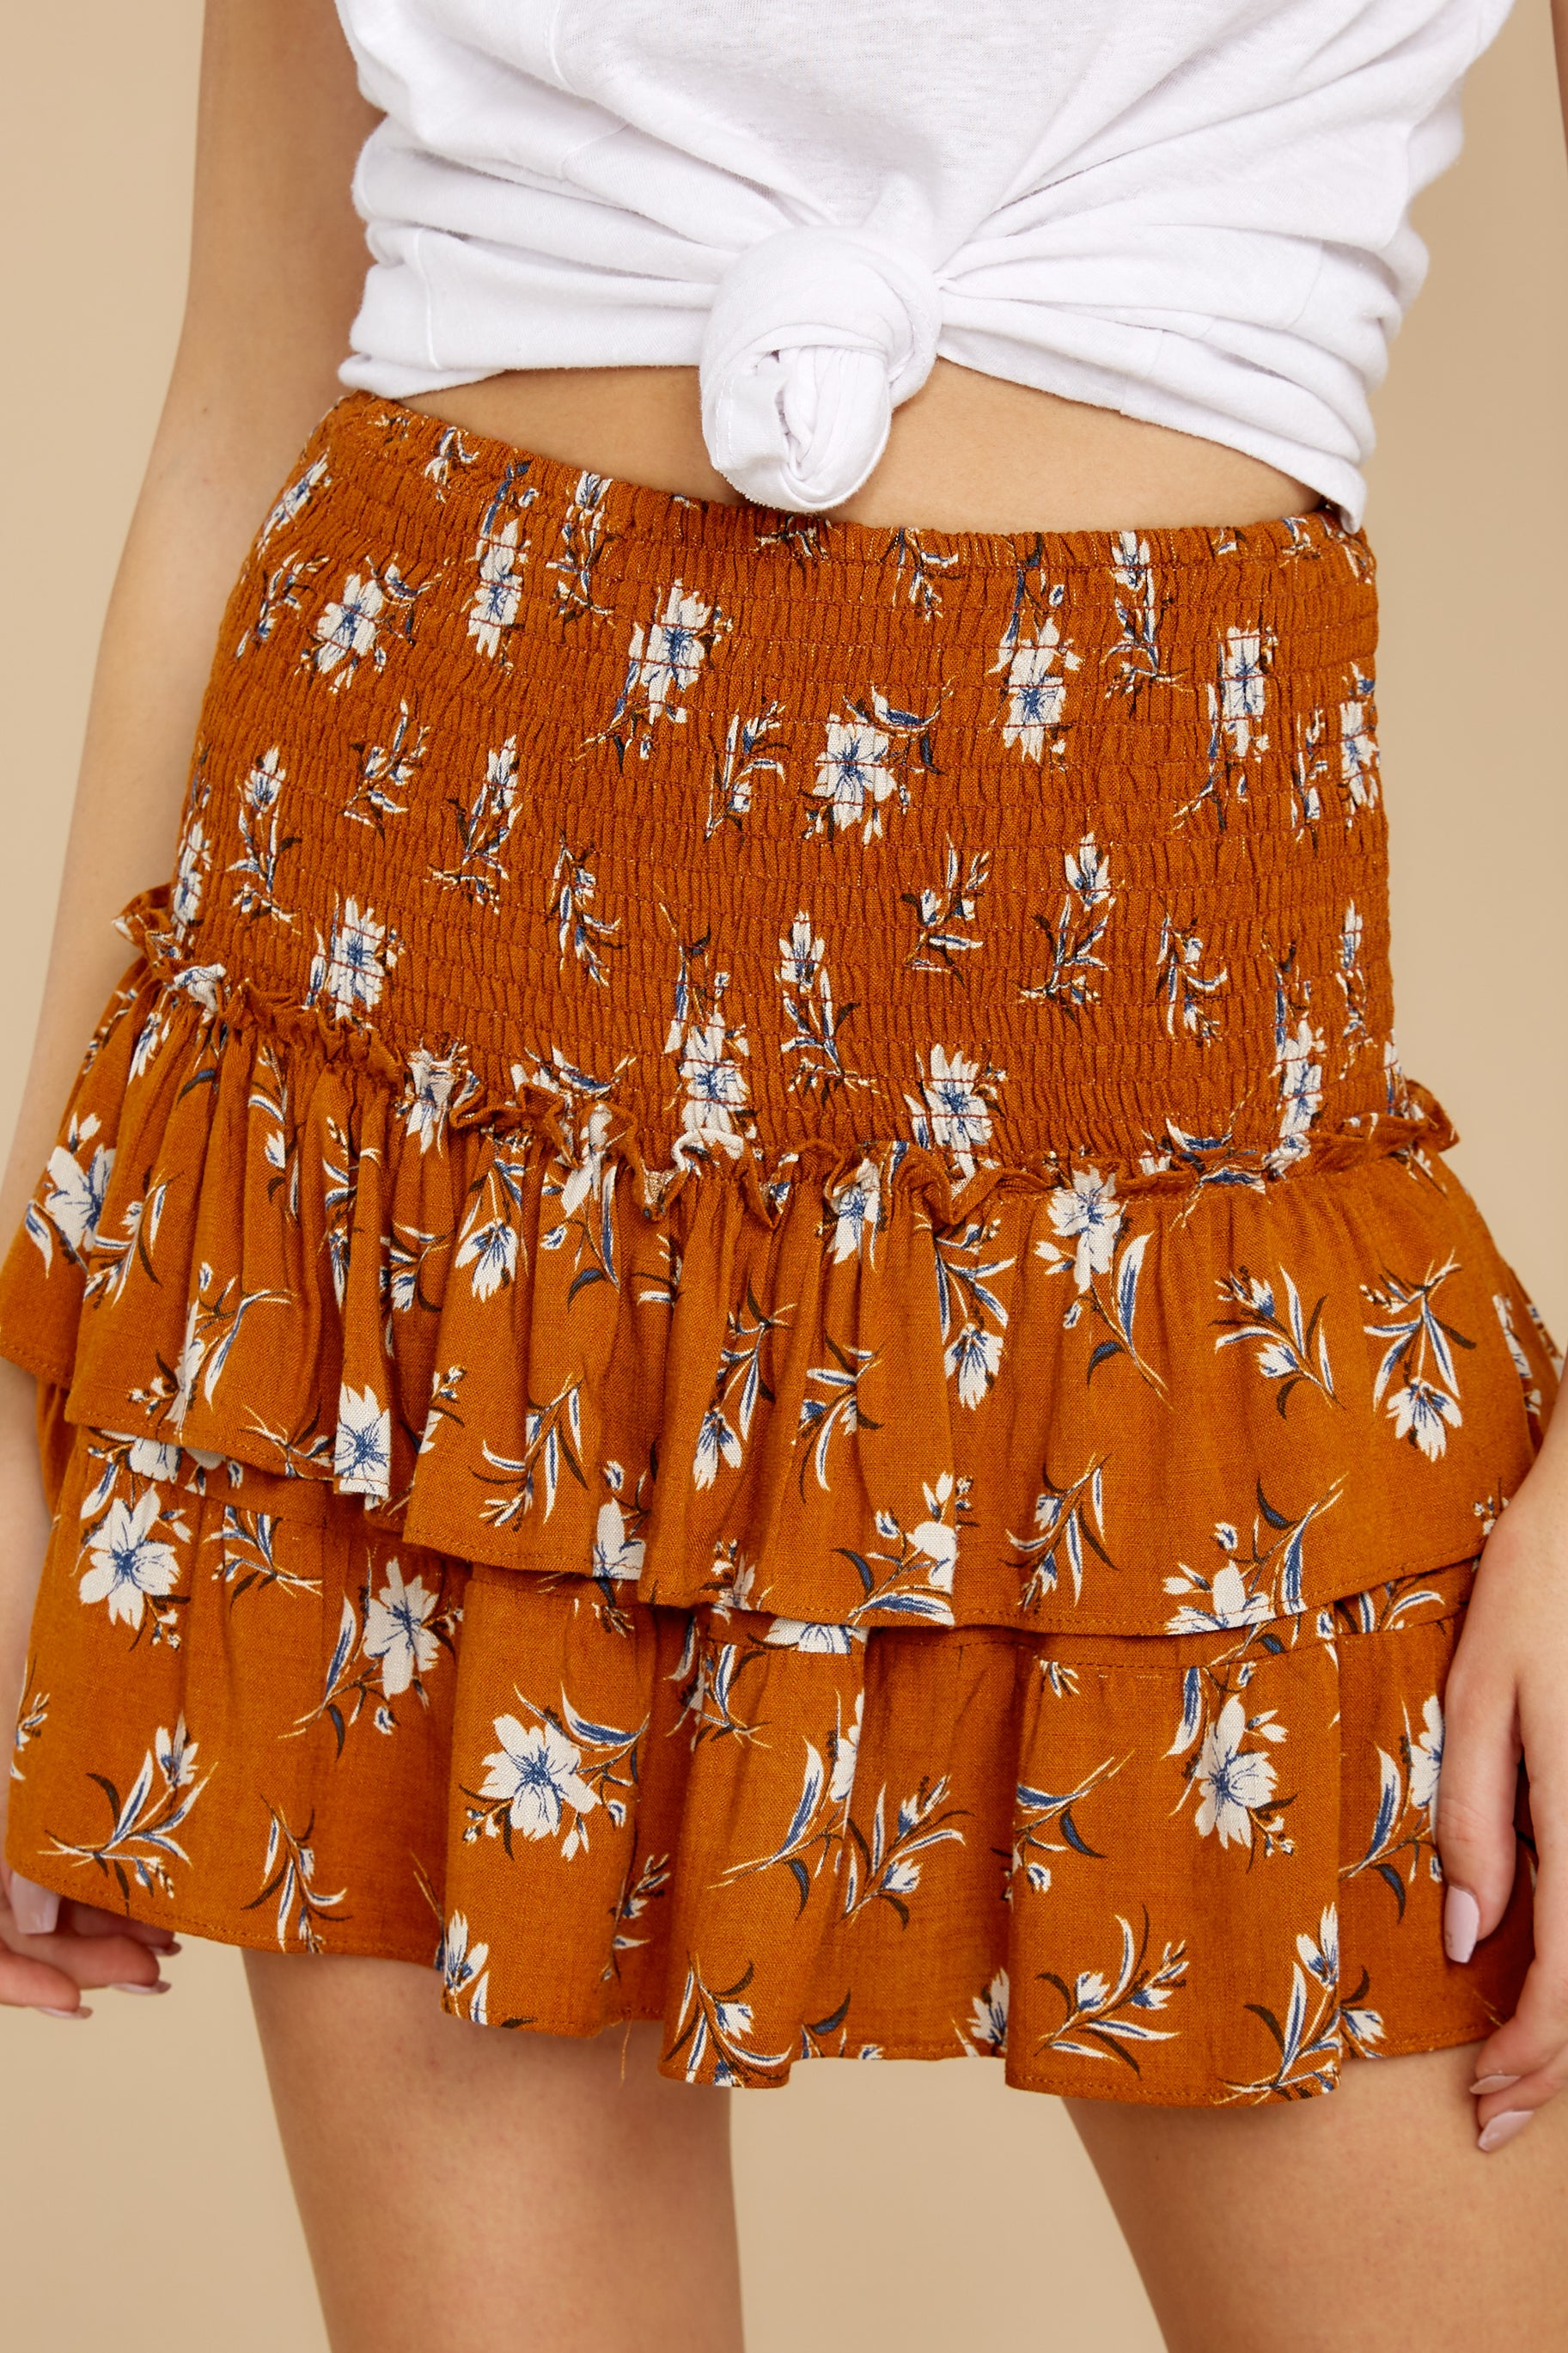 2 Moments Like These Rust Orange Floral Print Skirt at reddressboutique.com